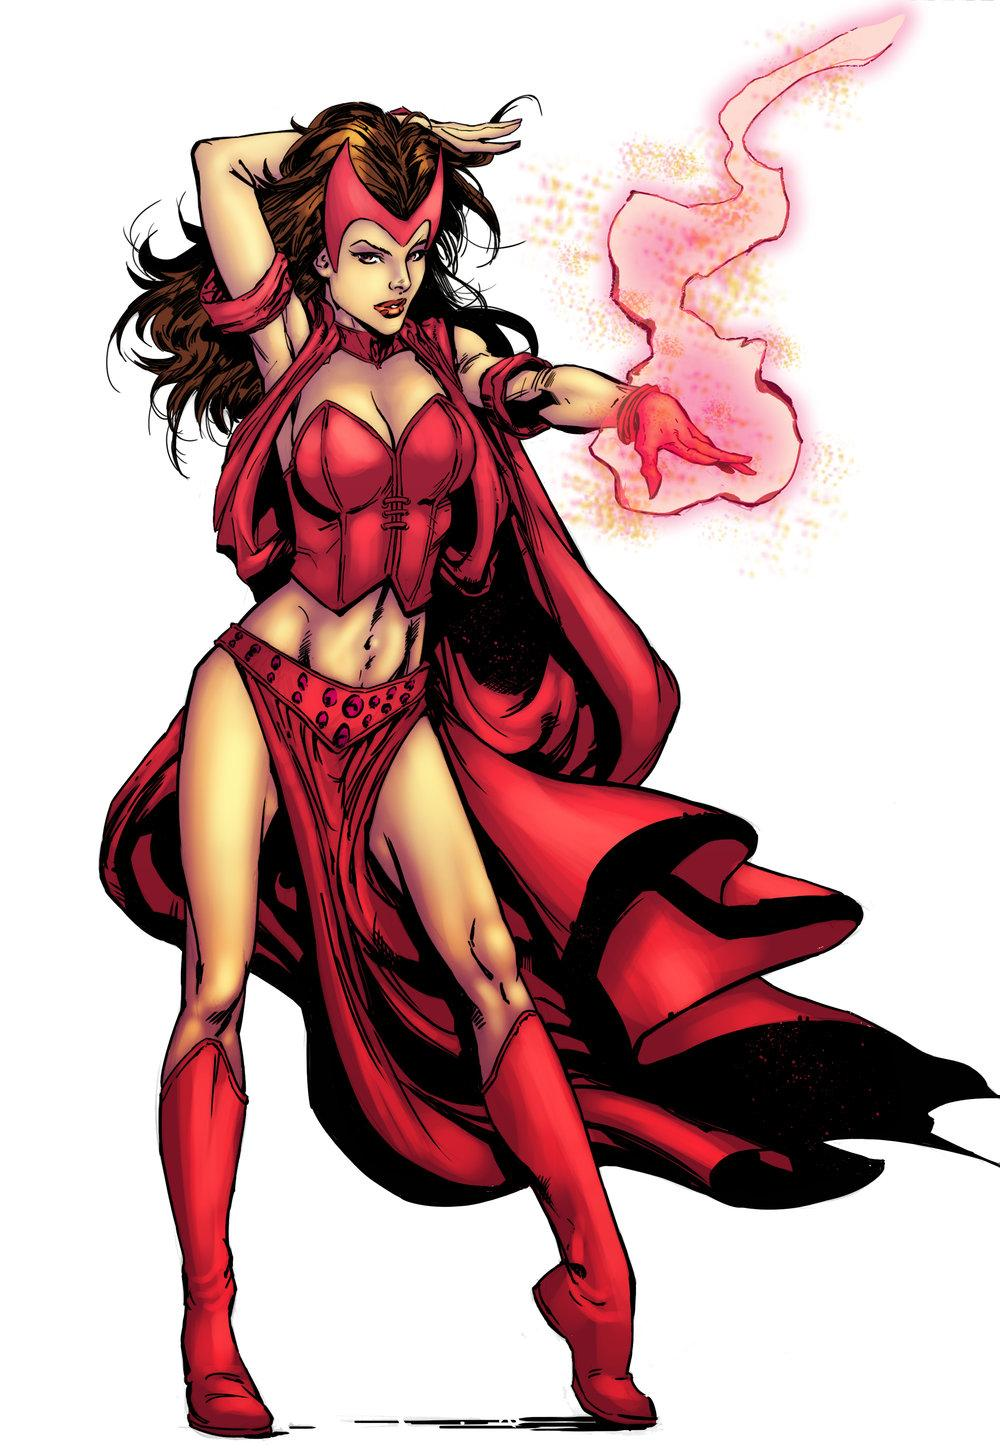 Drawn witchcraft scarlet witch Scarlet Scarlet Witch Scarlet Witches